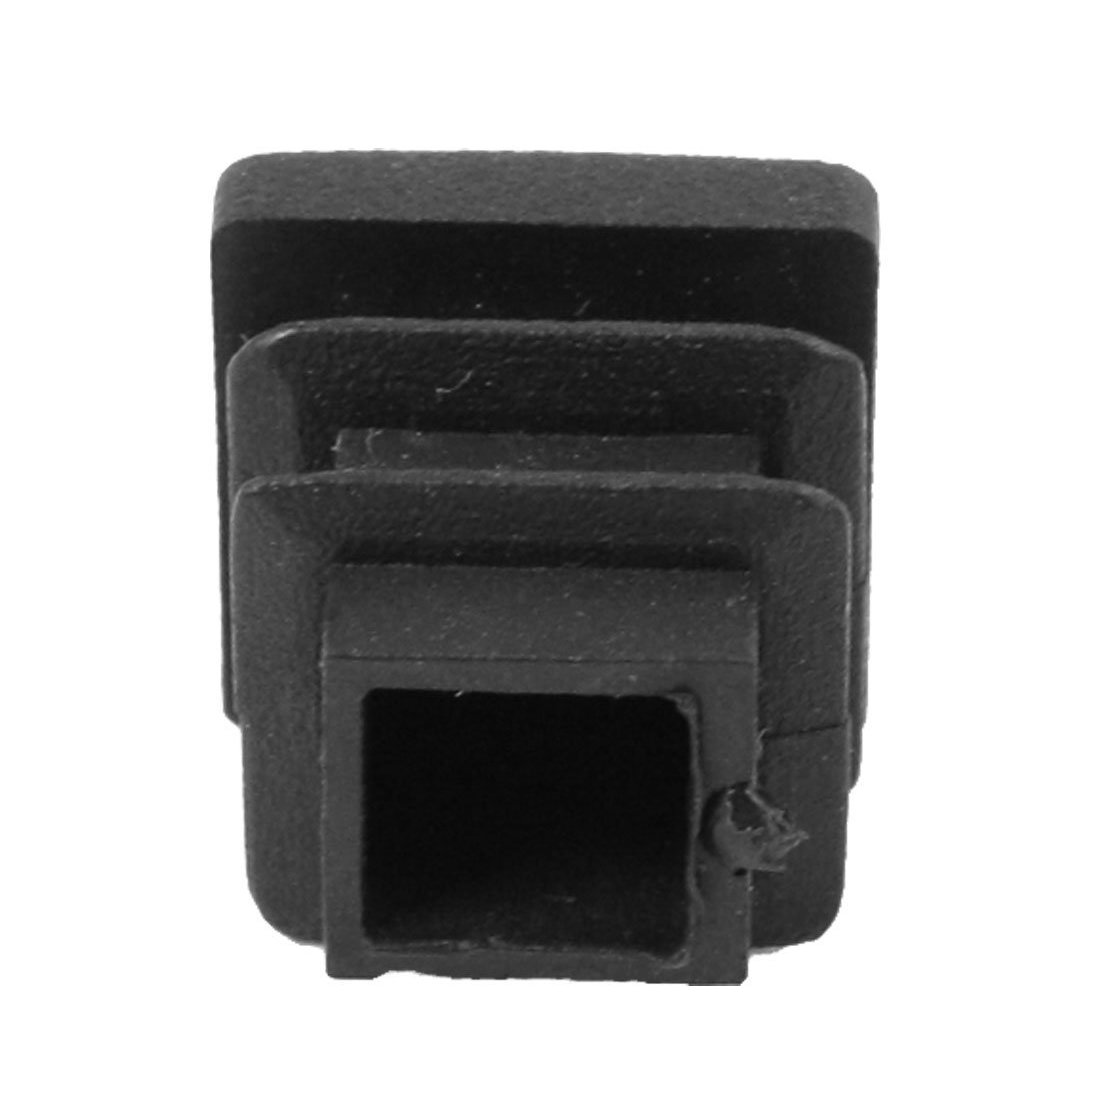 TOOGOO 12 Pc 16mm x 16mm Square Striated Plastic Table End Plugs Inserted Tube Black by TOOGOO (Image #2)